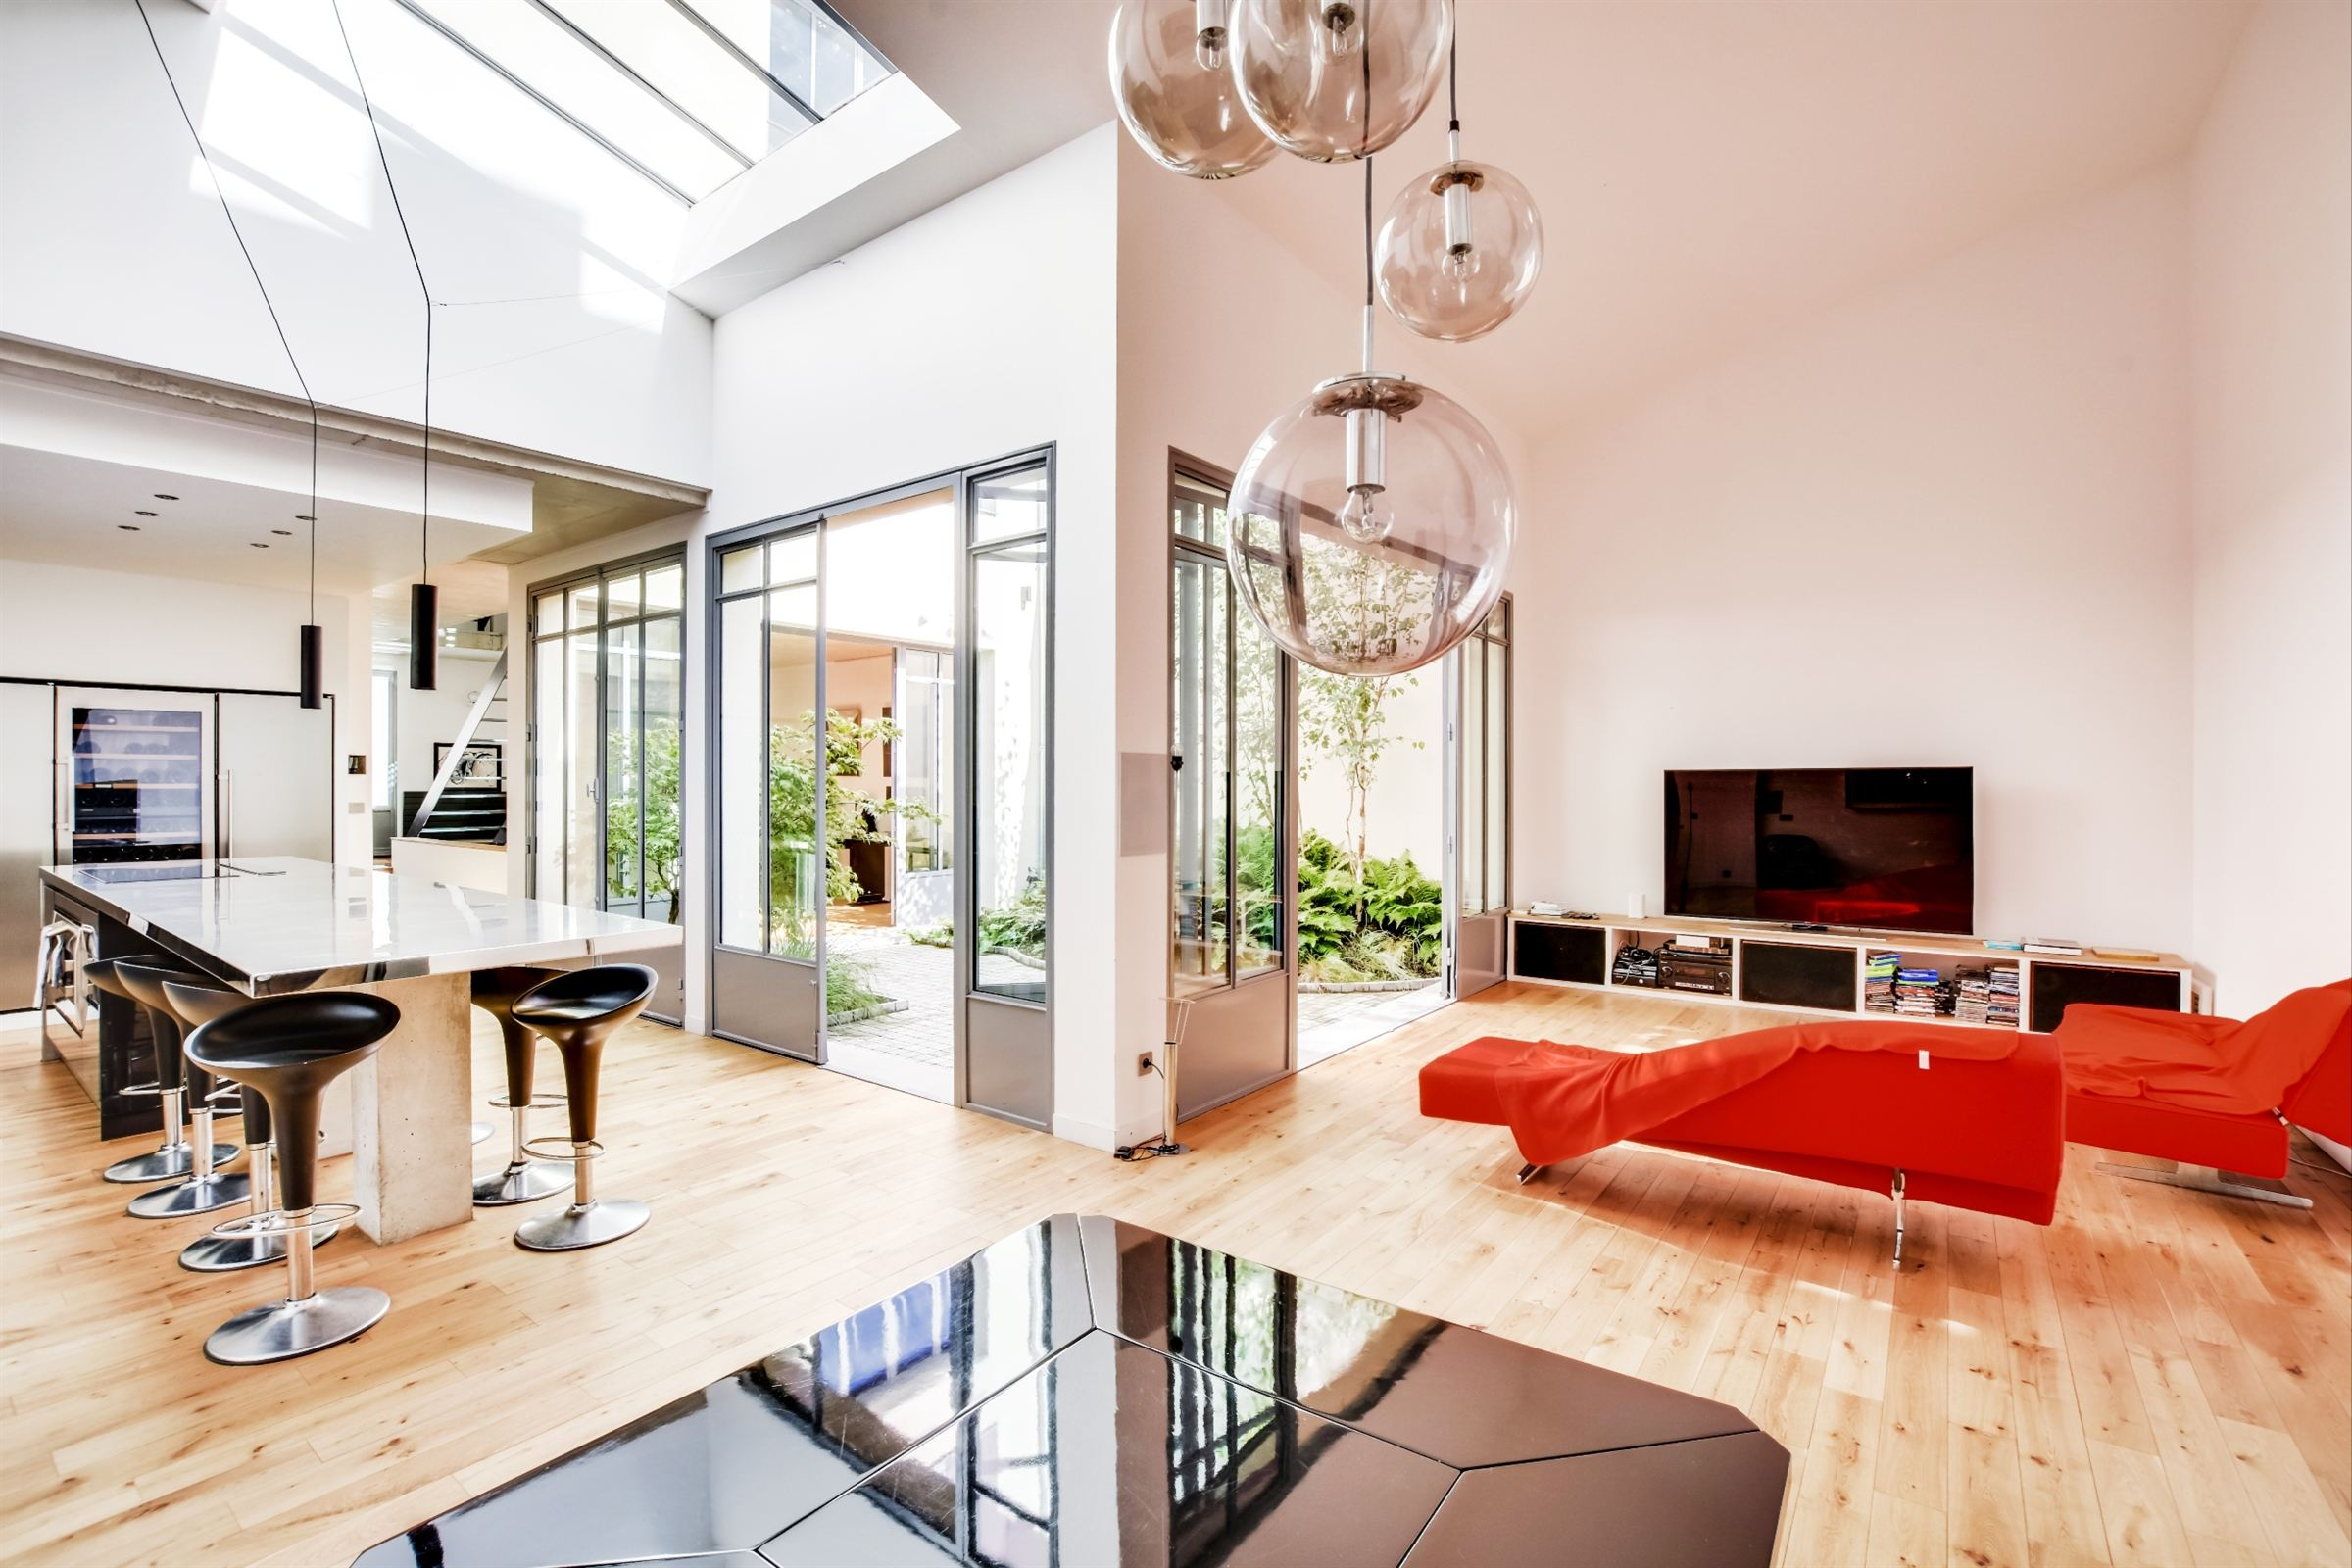 sales property at A 250 sq.m Architect-designed House for sale, Boulogne, Les Passages, 4 bedrooms